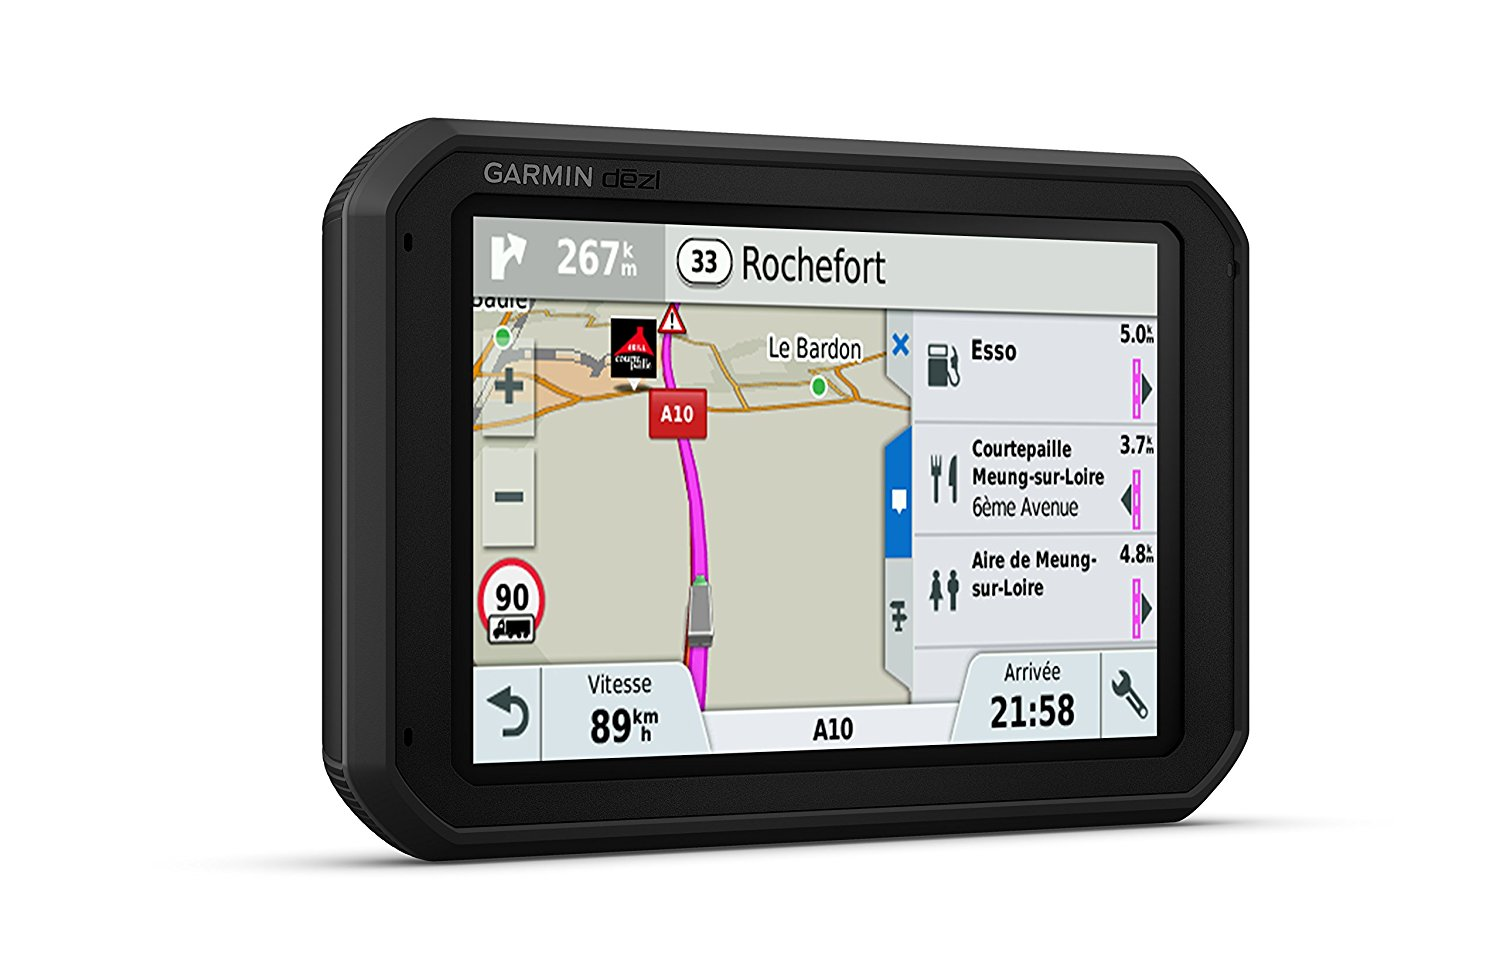 garmin dezl 780lmt d lkw navi gps bluetooth. Black Bedroom Furniture Sets. Home Design Ideas